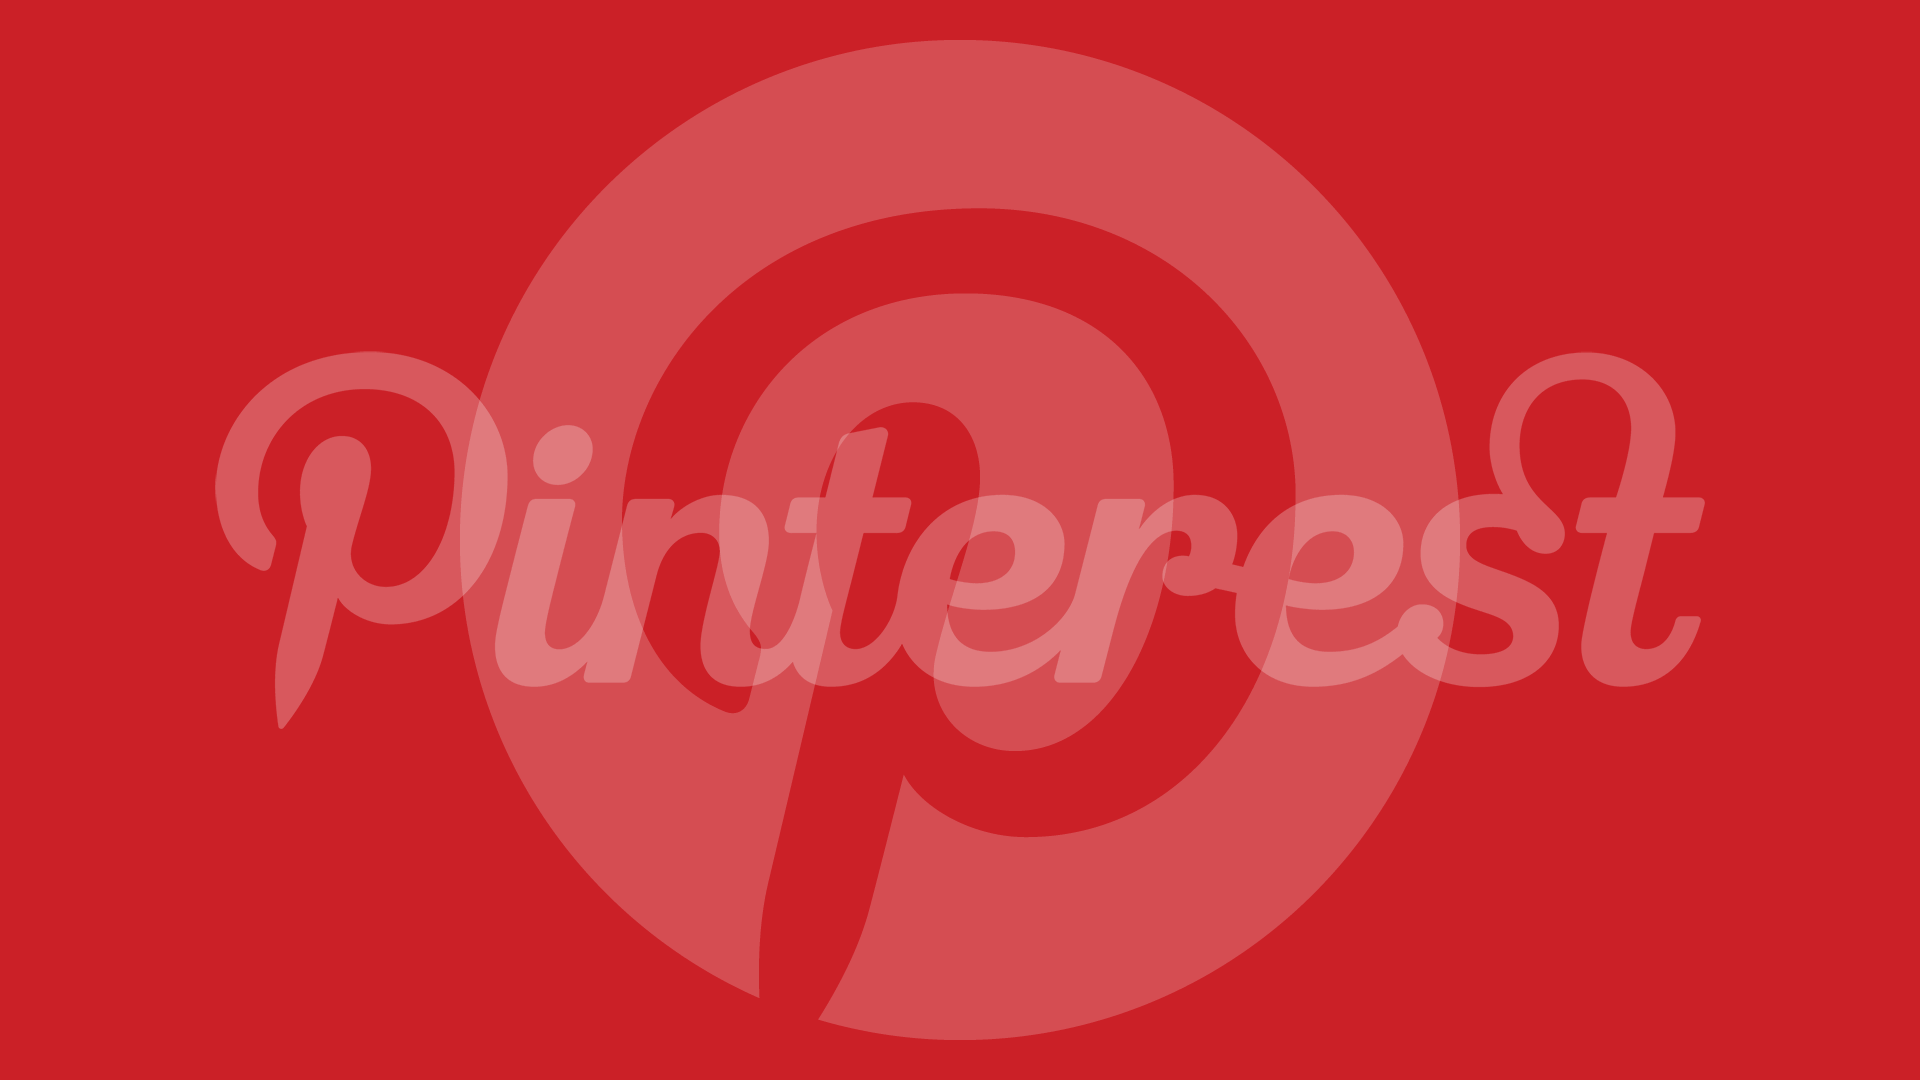 pinterest-name-white-fade-1920.png